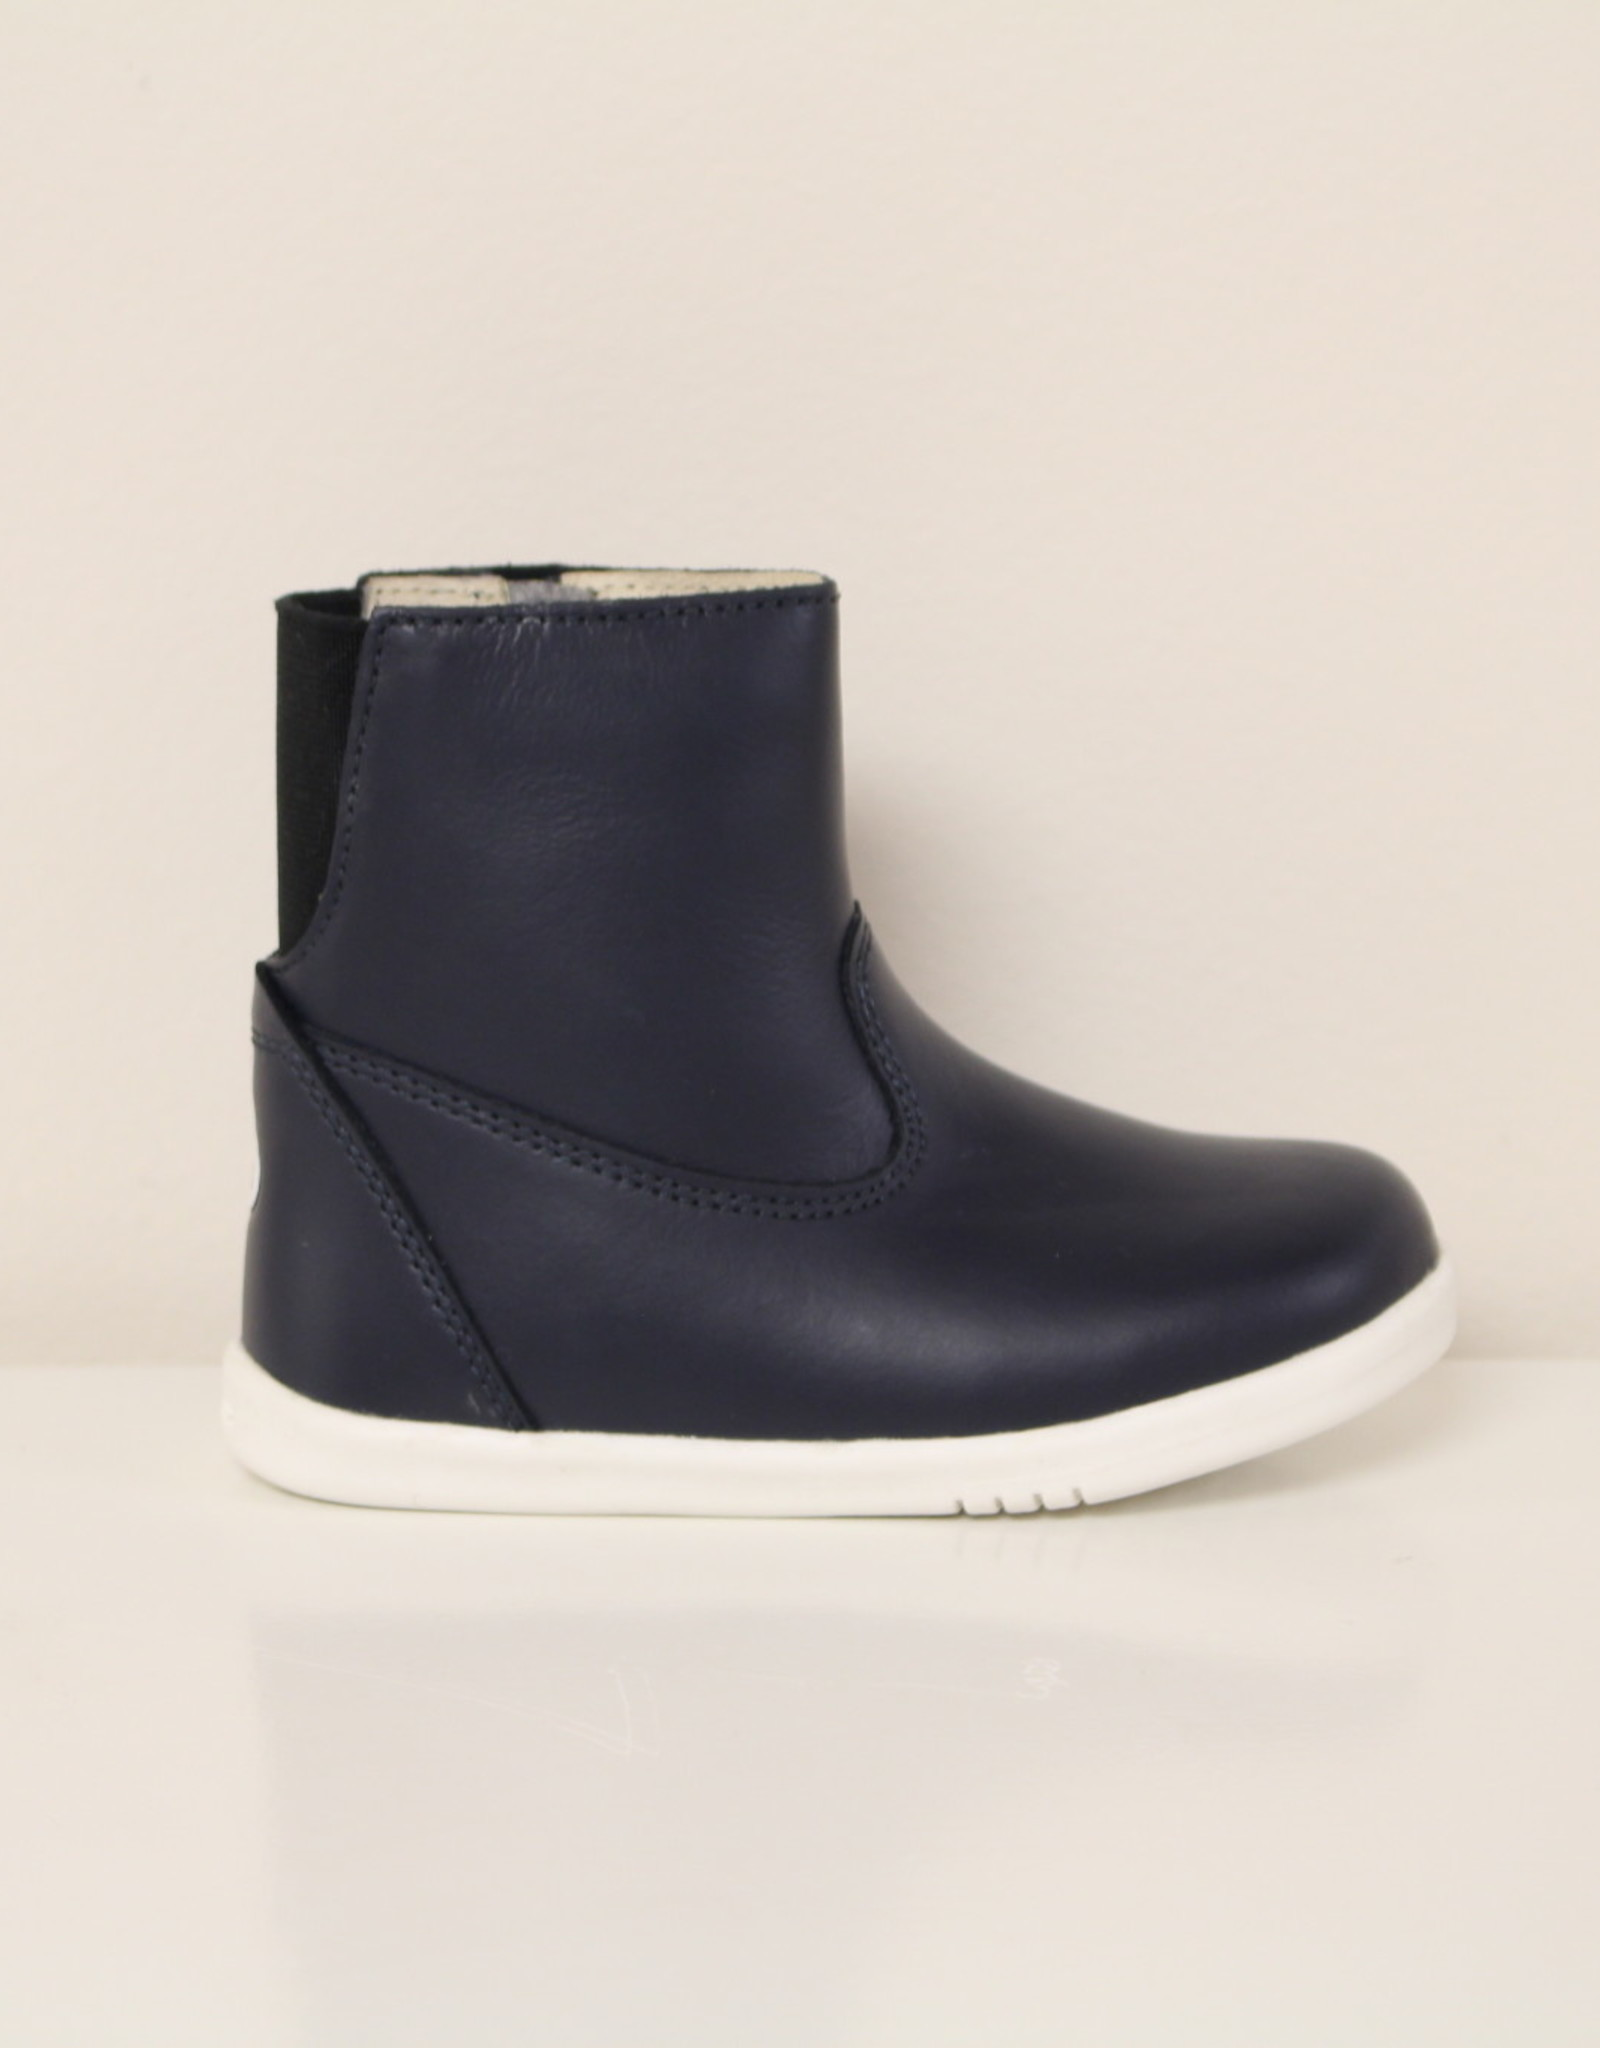 Bobux walk winter Paddington waterproof